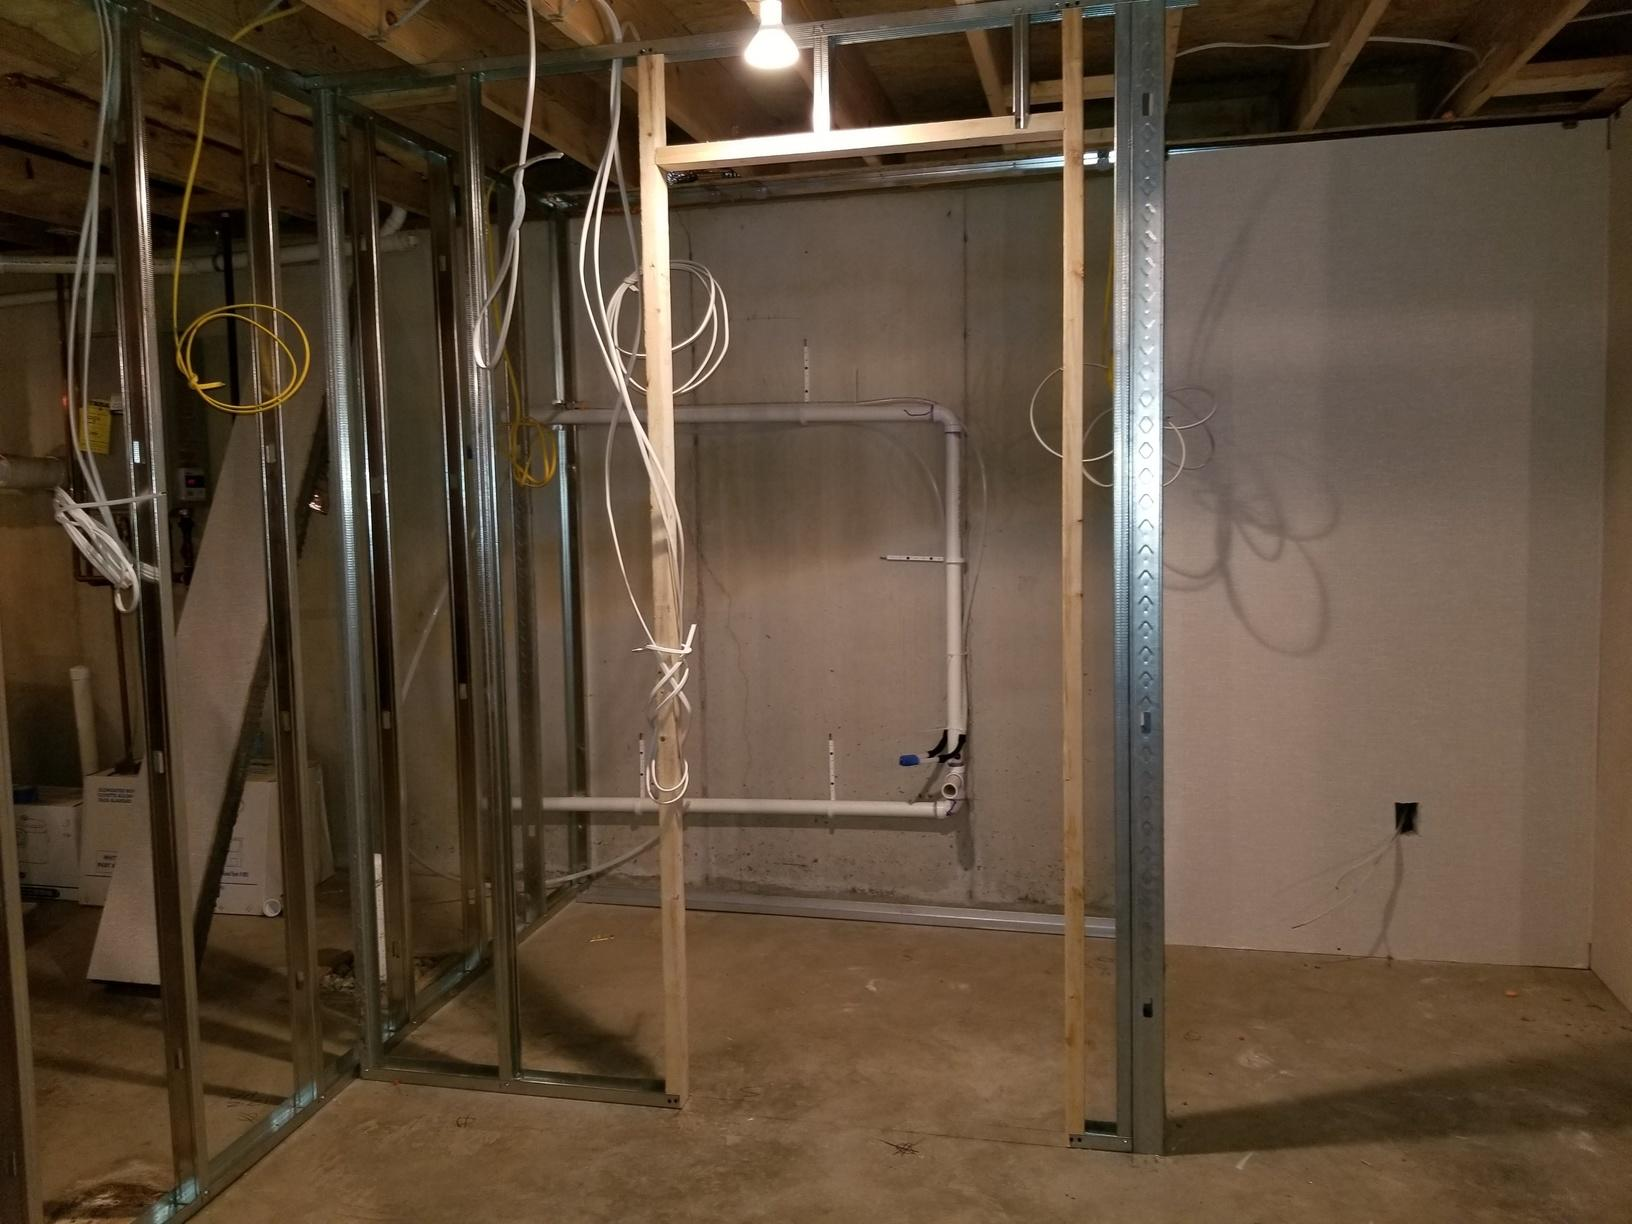 Interior wall framing with steel studs